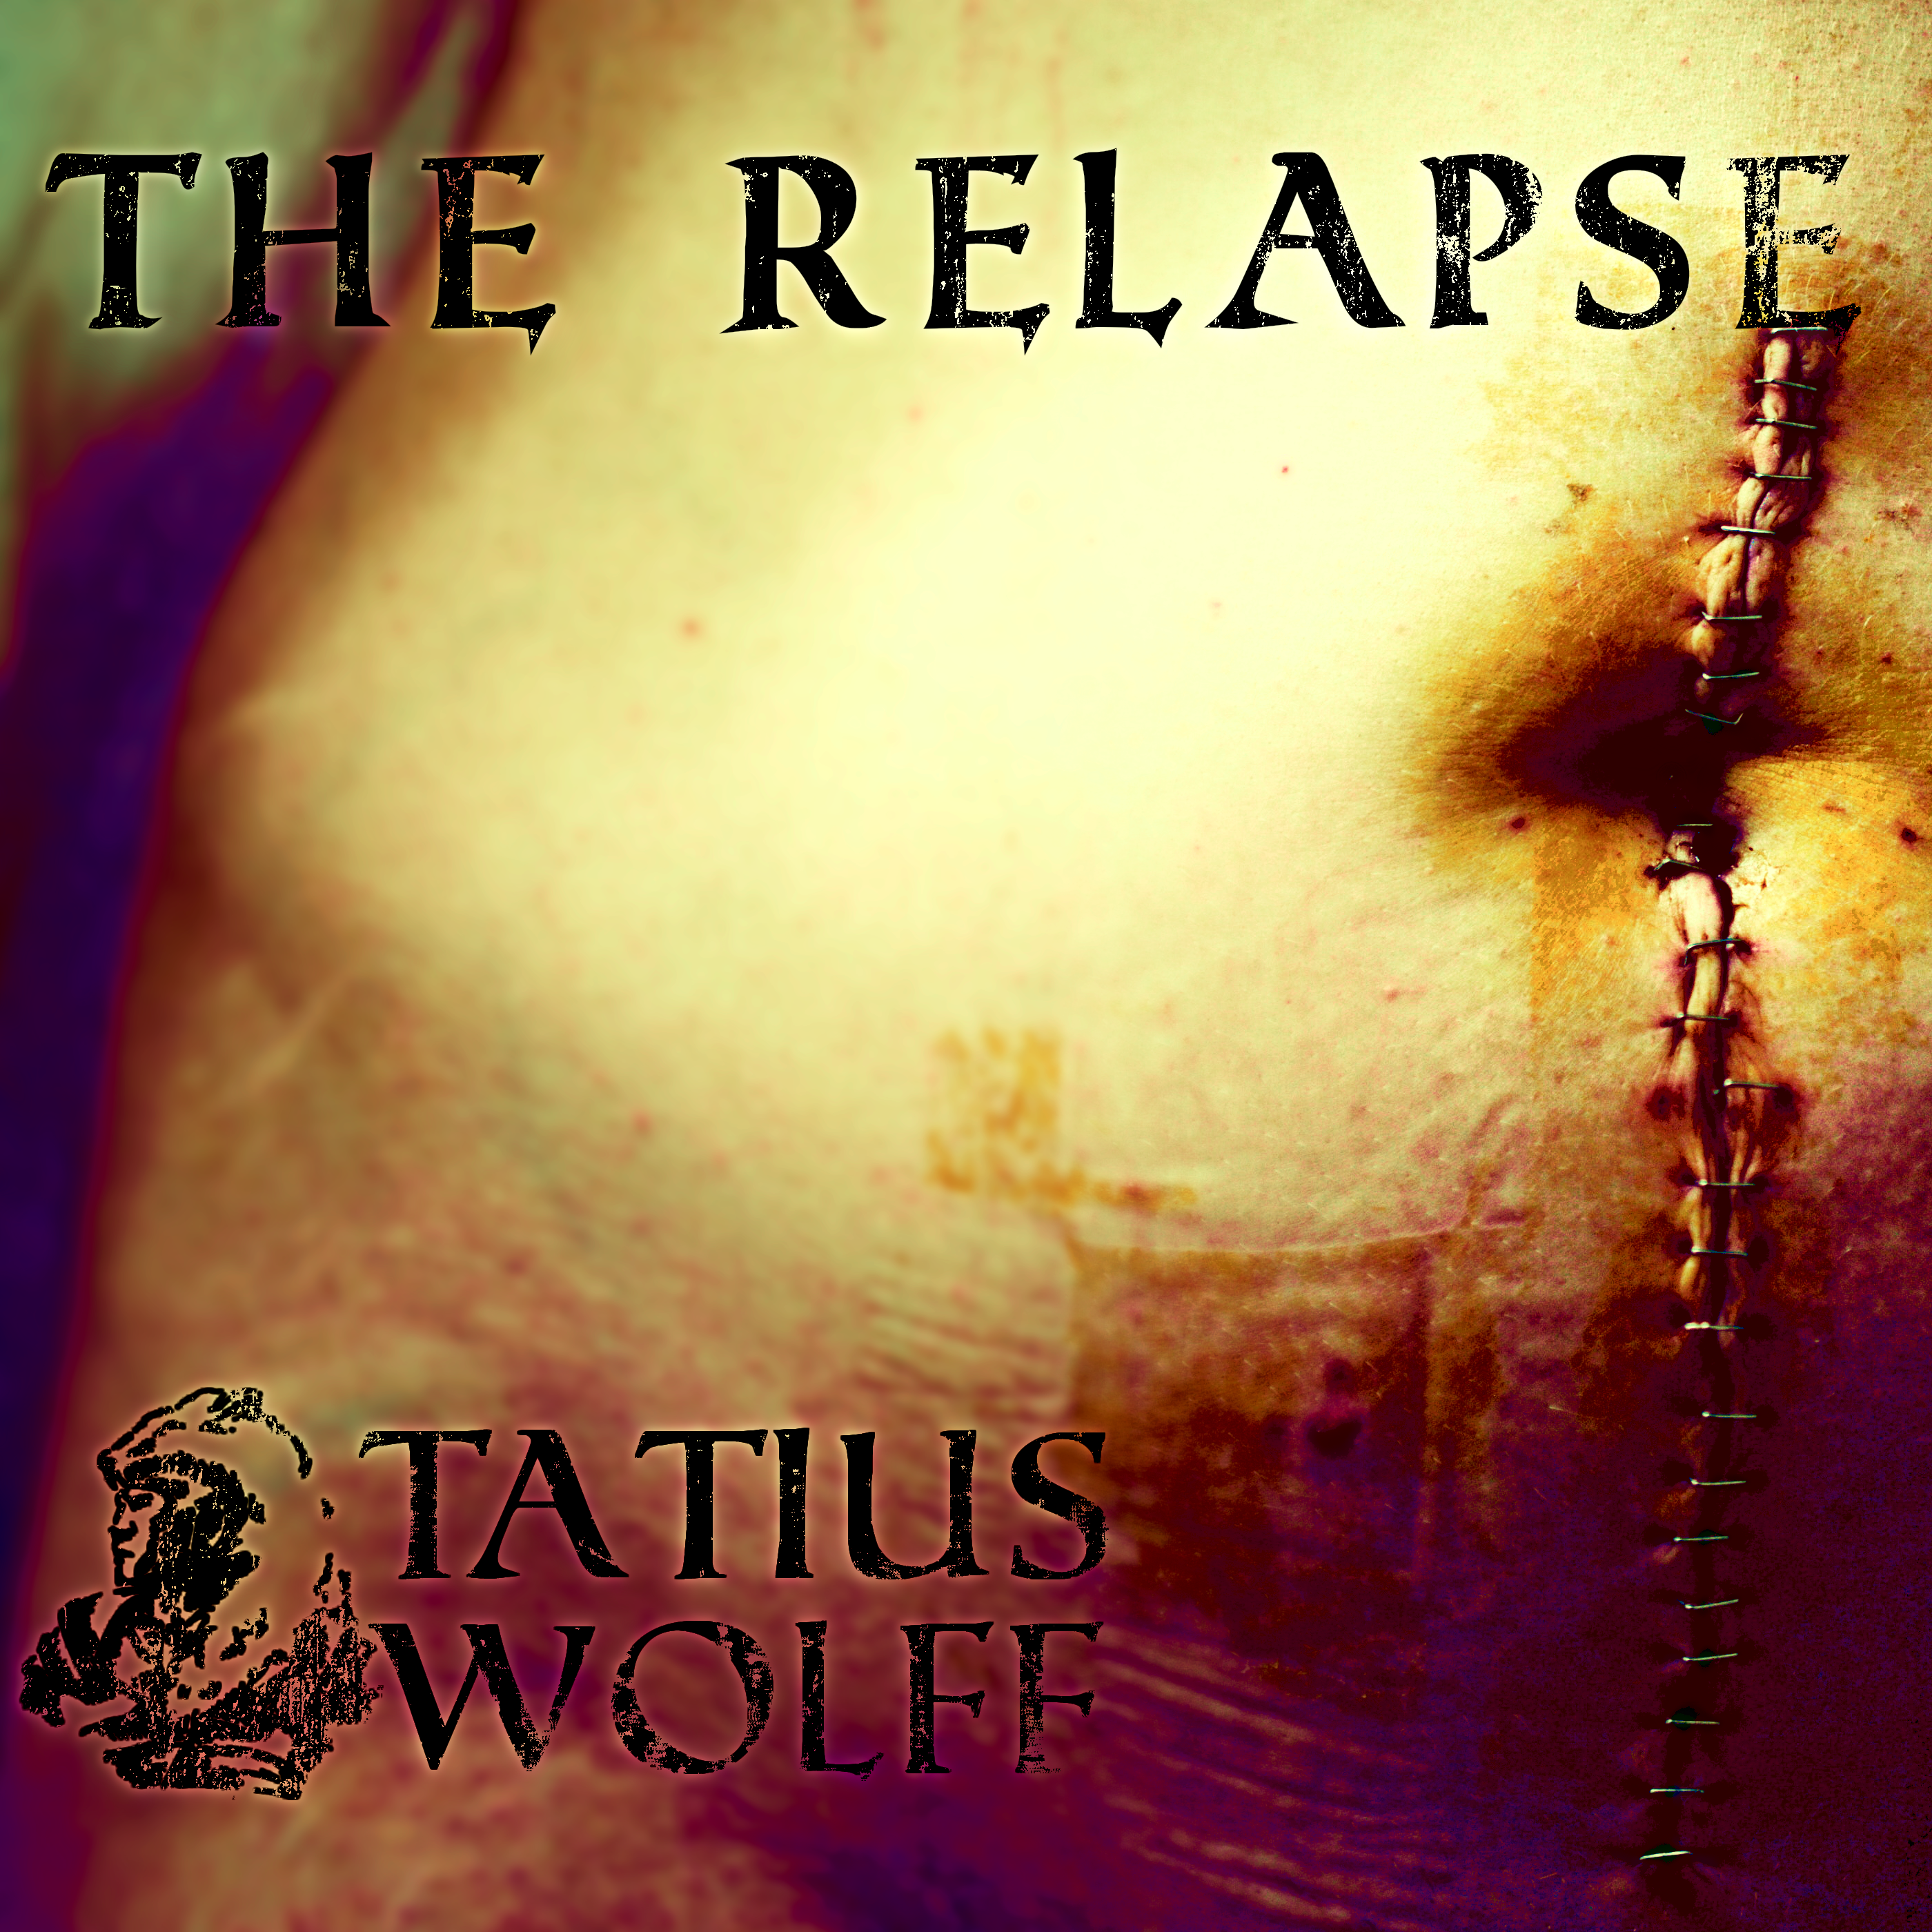 Album Review - 'The Relapse' - blog post image